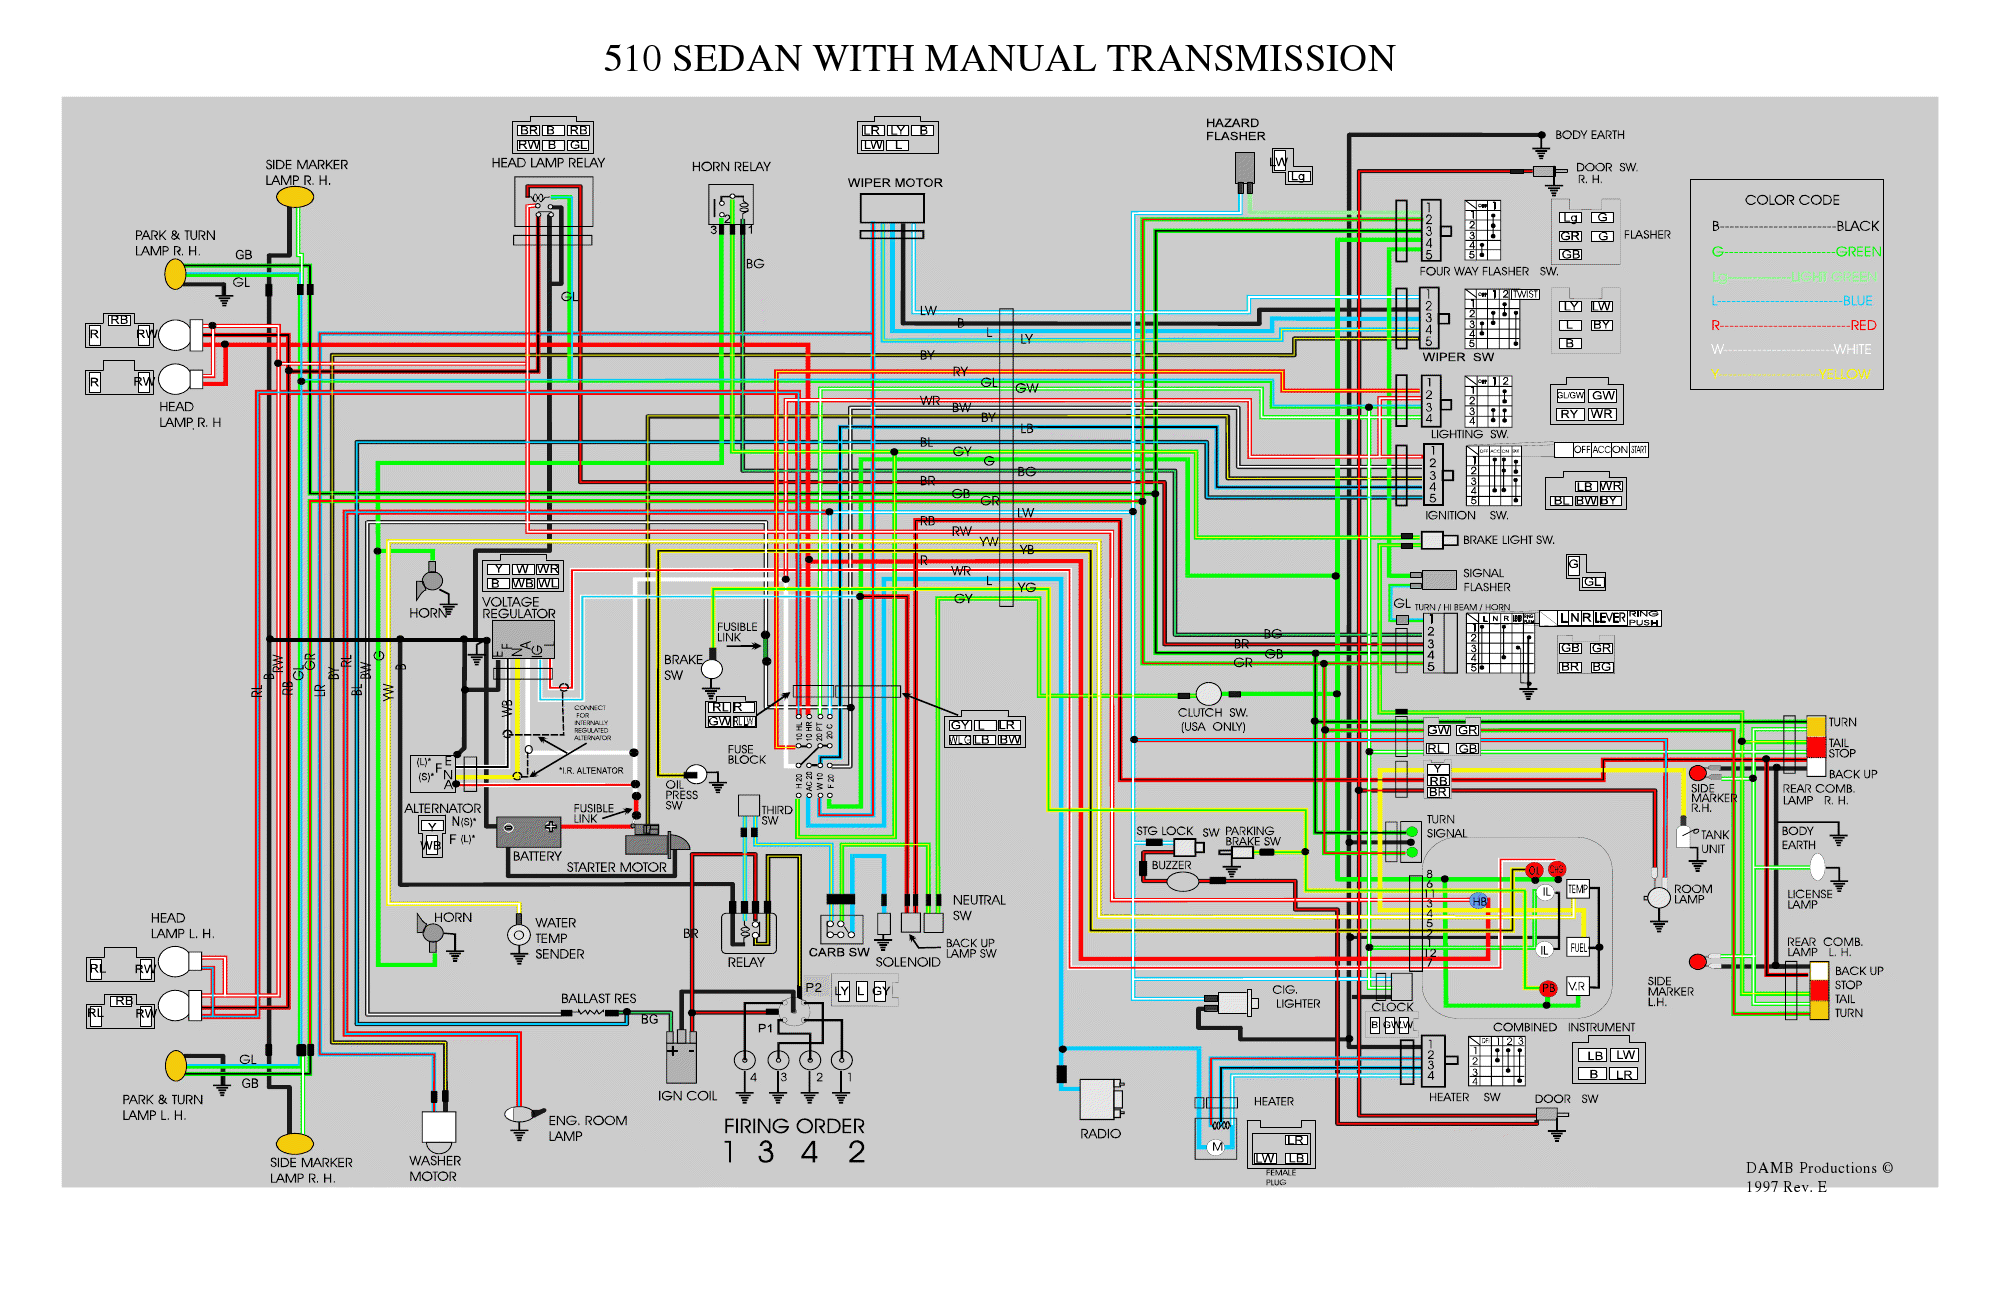 z alternator wiring diagram z wiring diagrams datsun 510 wiring diagram z alternator wiring diagram datsun 510 wiring diagram